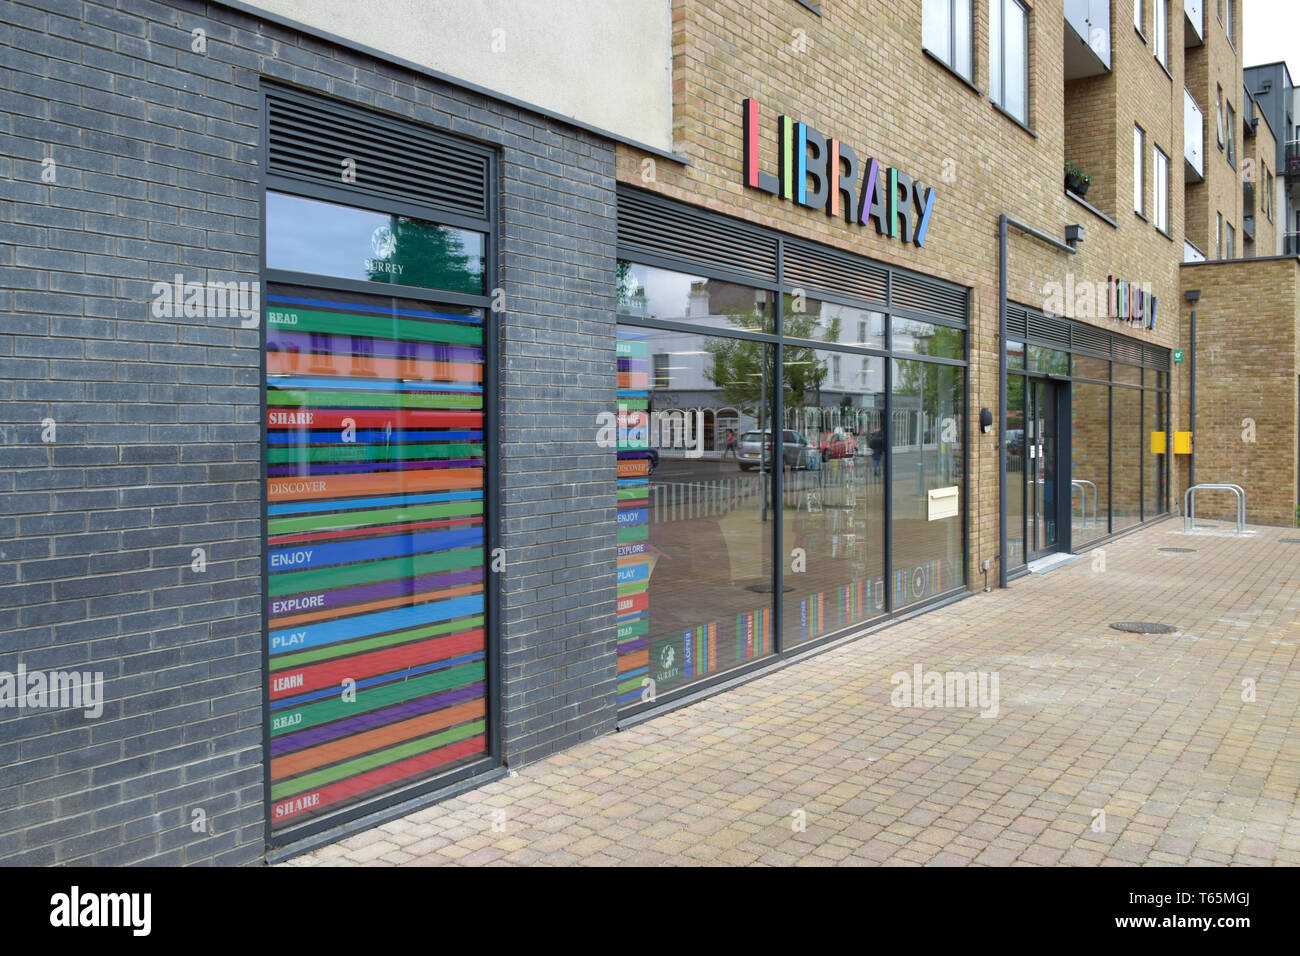 New Library, Horley, Surrey (1 of 4) - Stock Image